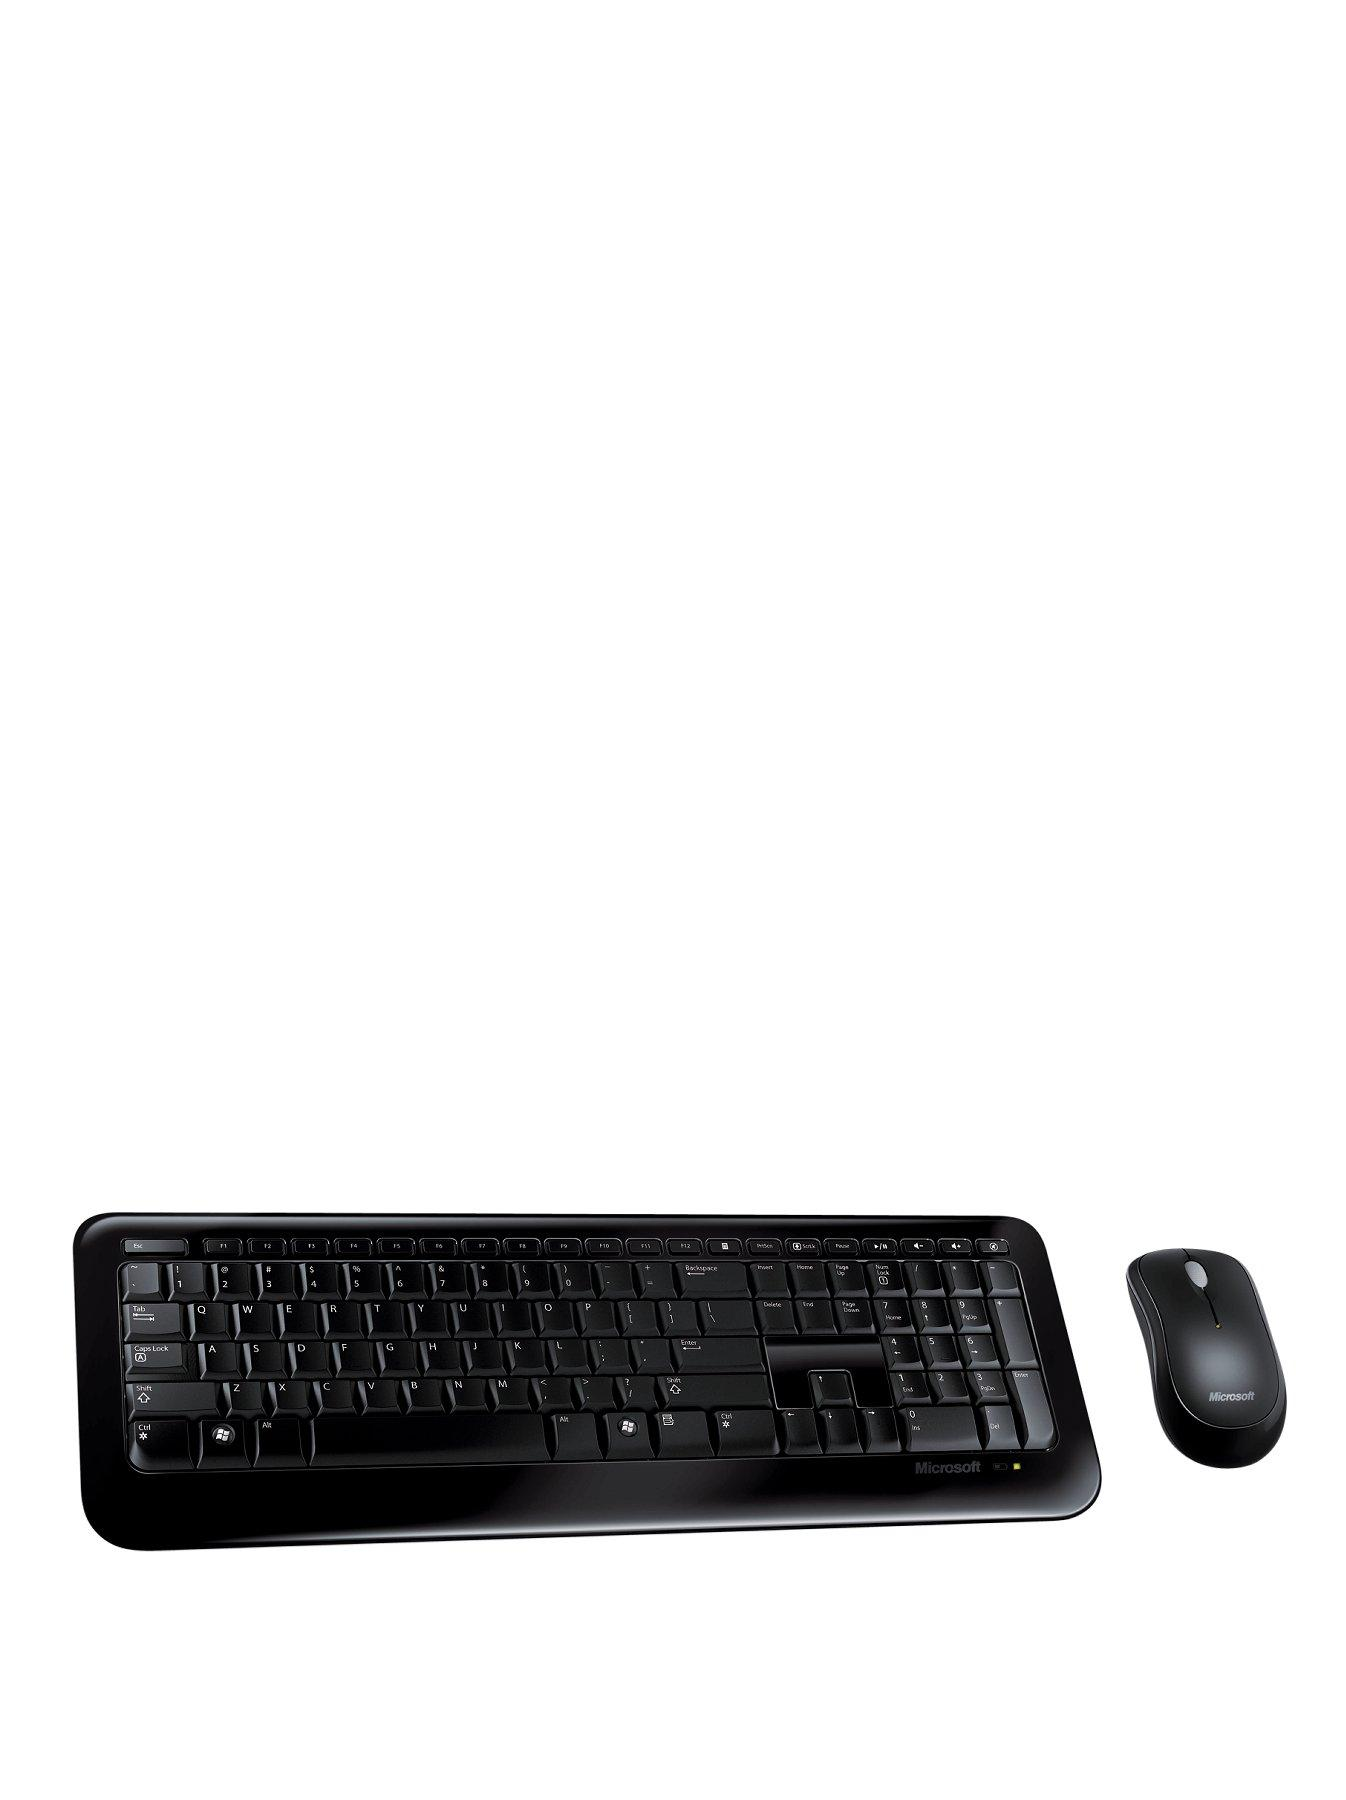 Microsoft Desktop 800 Wireless Keyboard and Mouse Set